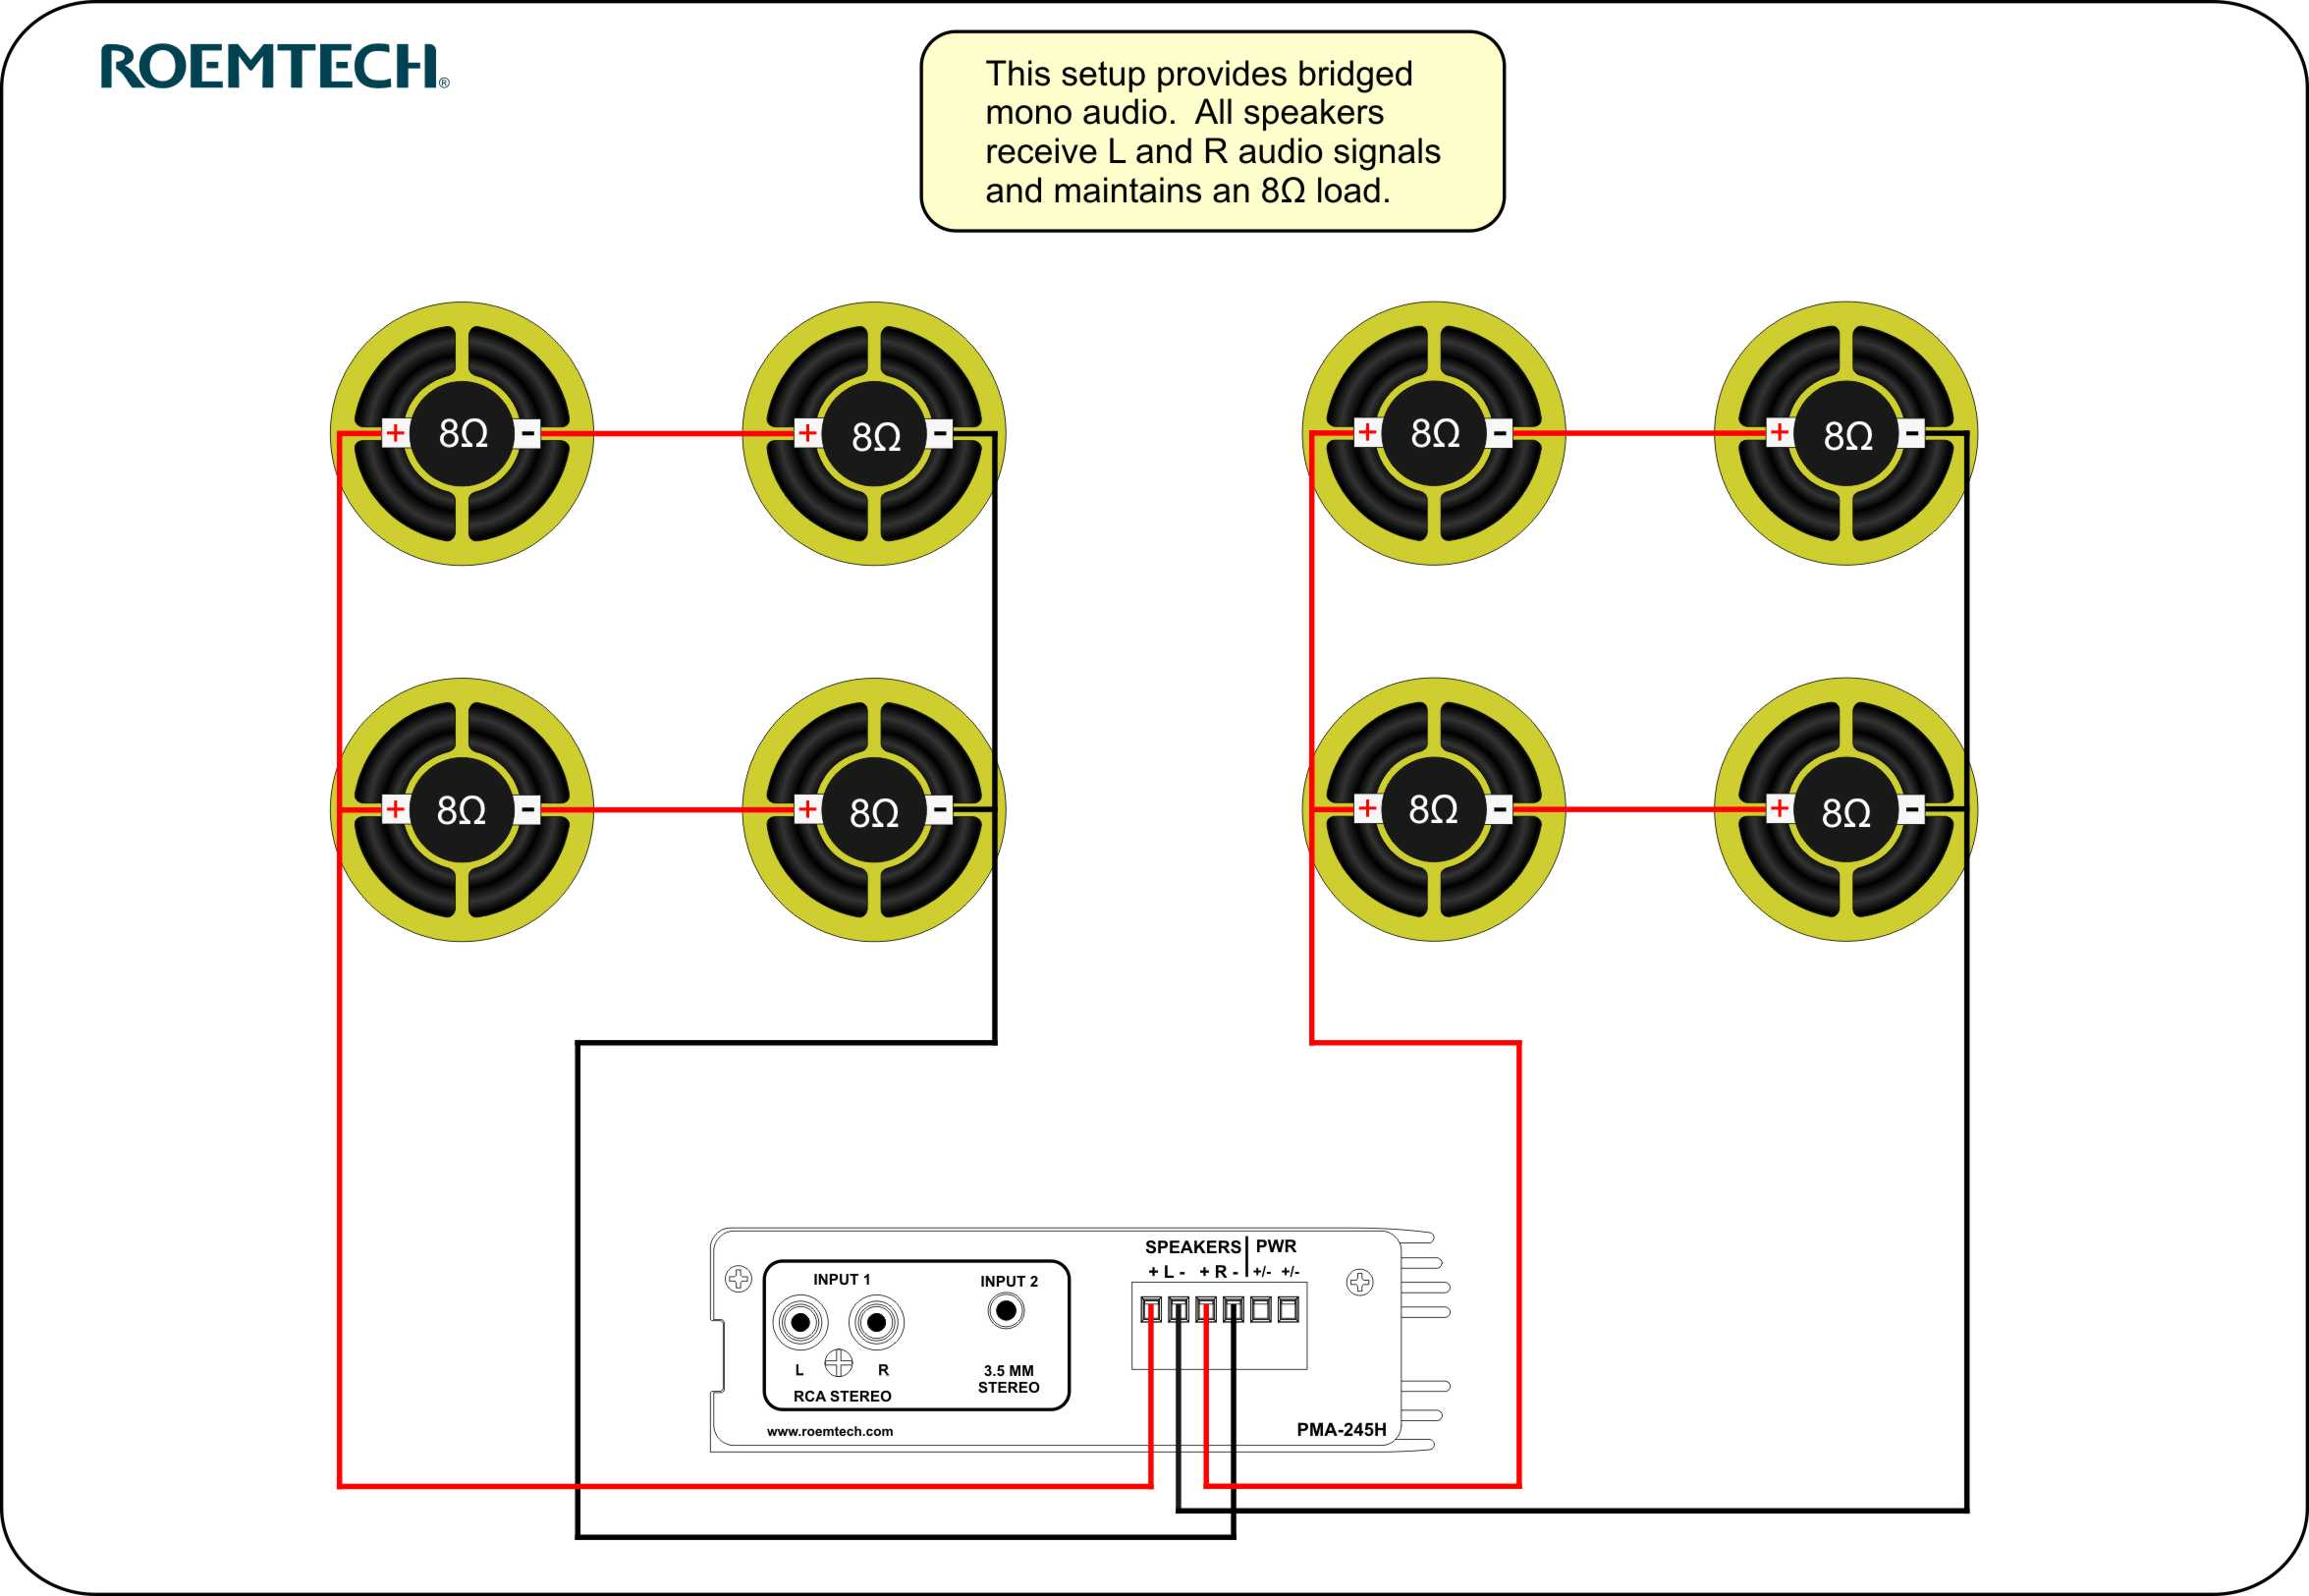 classroom_audio_multiple_speaker classroom audio systems multiple speaker wiring diagram 70 volt speaker system wiring diagram at pacquiaovsvargaslive.co